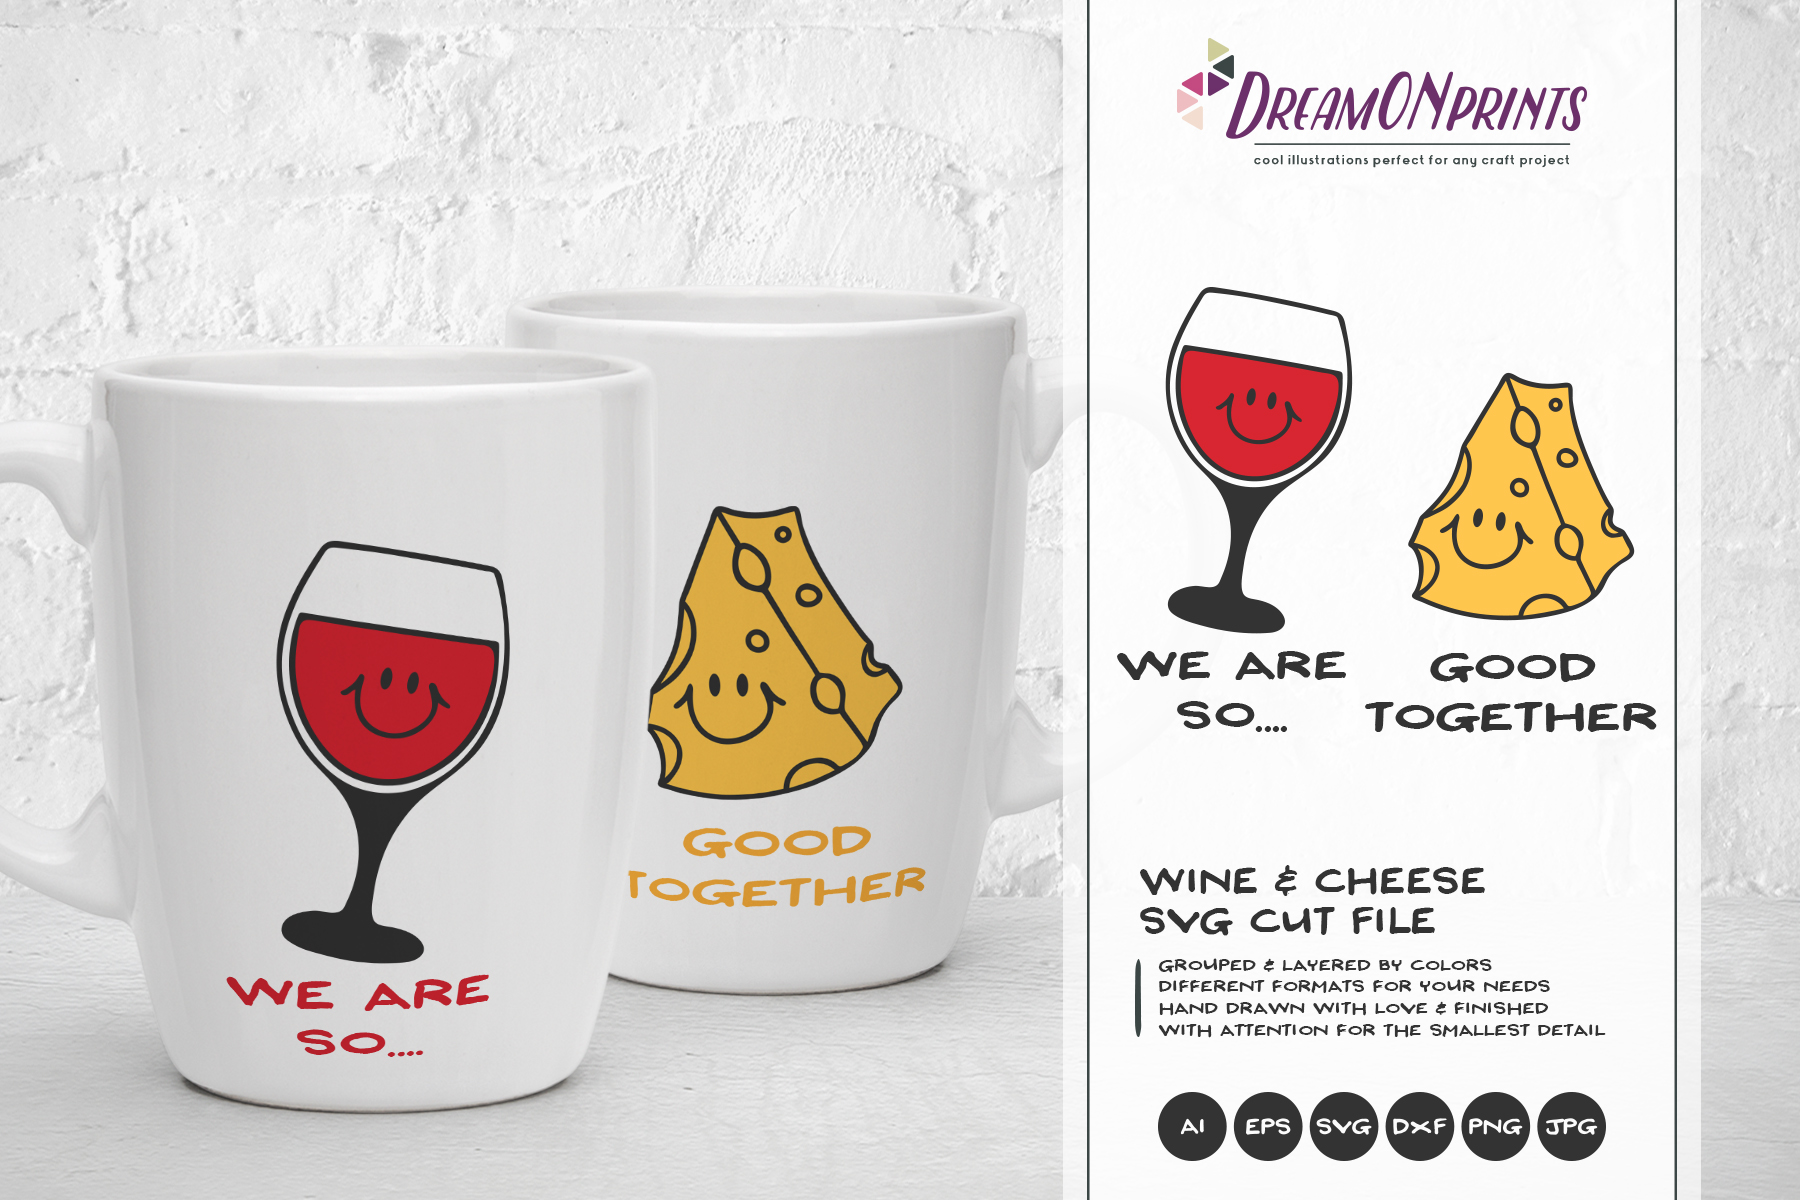 Wine and Cheese SVG BUNDLE - Bundle SVG Cut Files example image 11